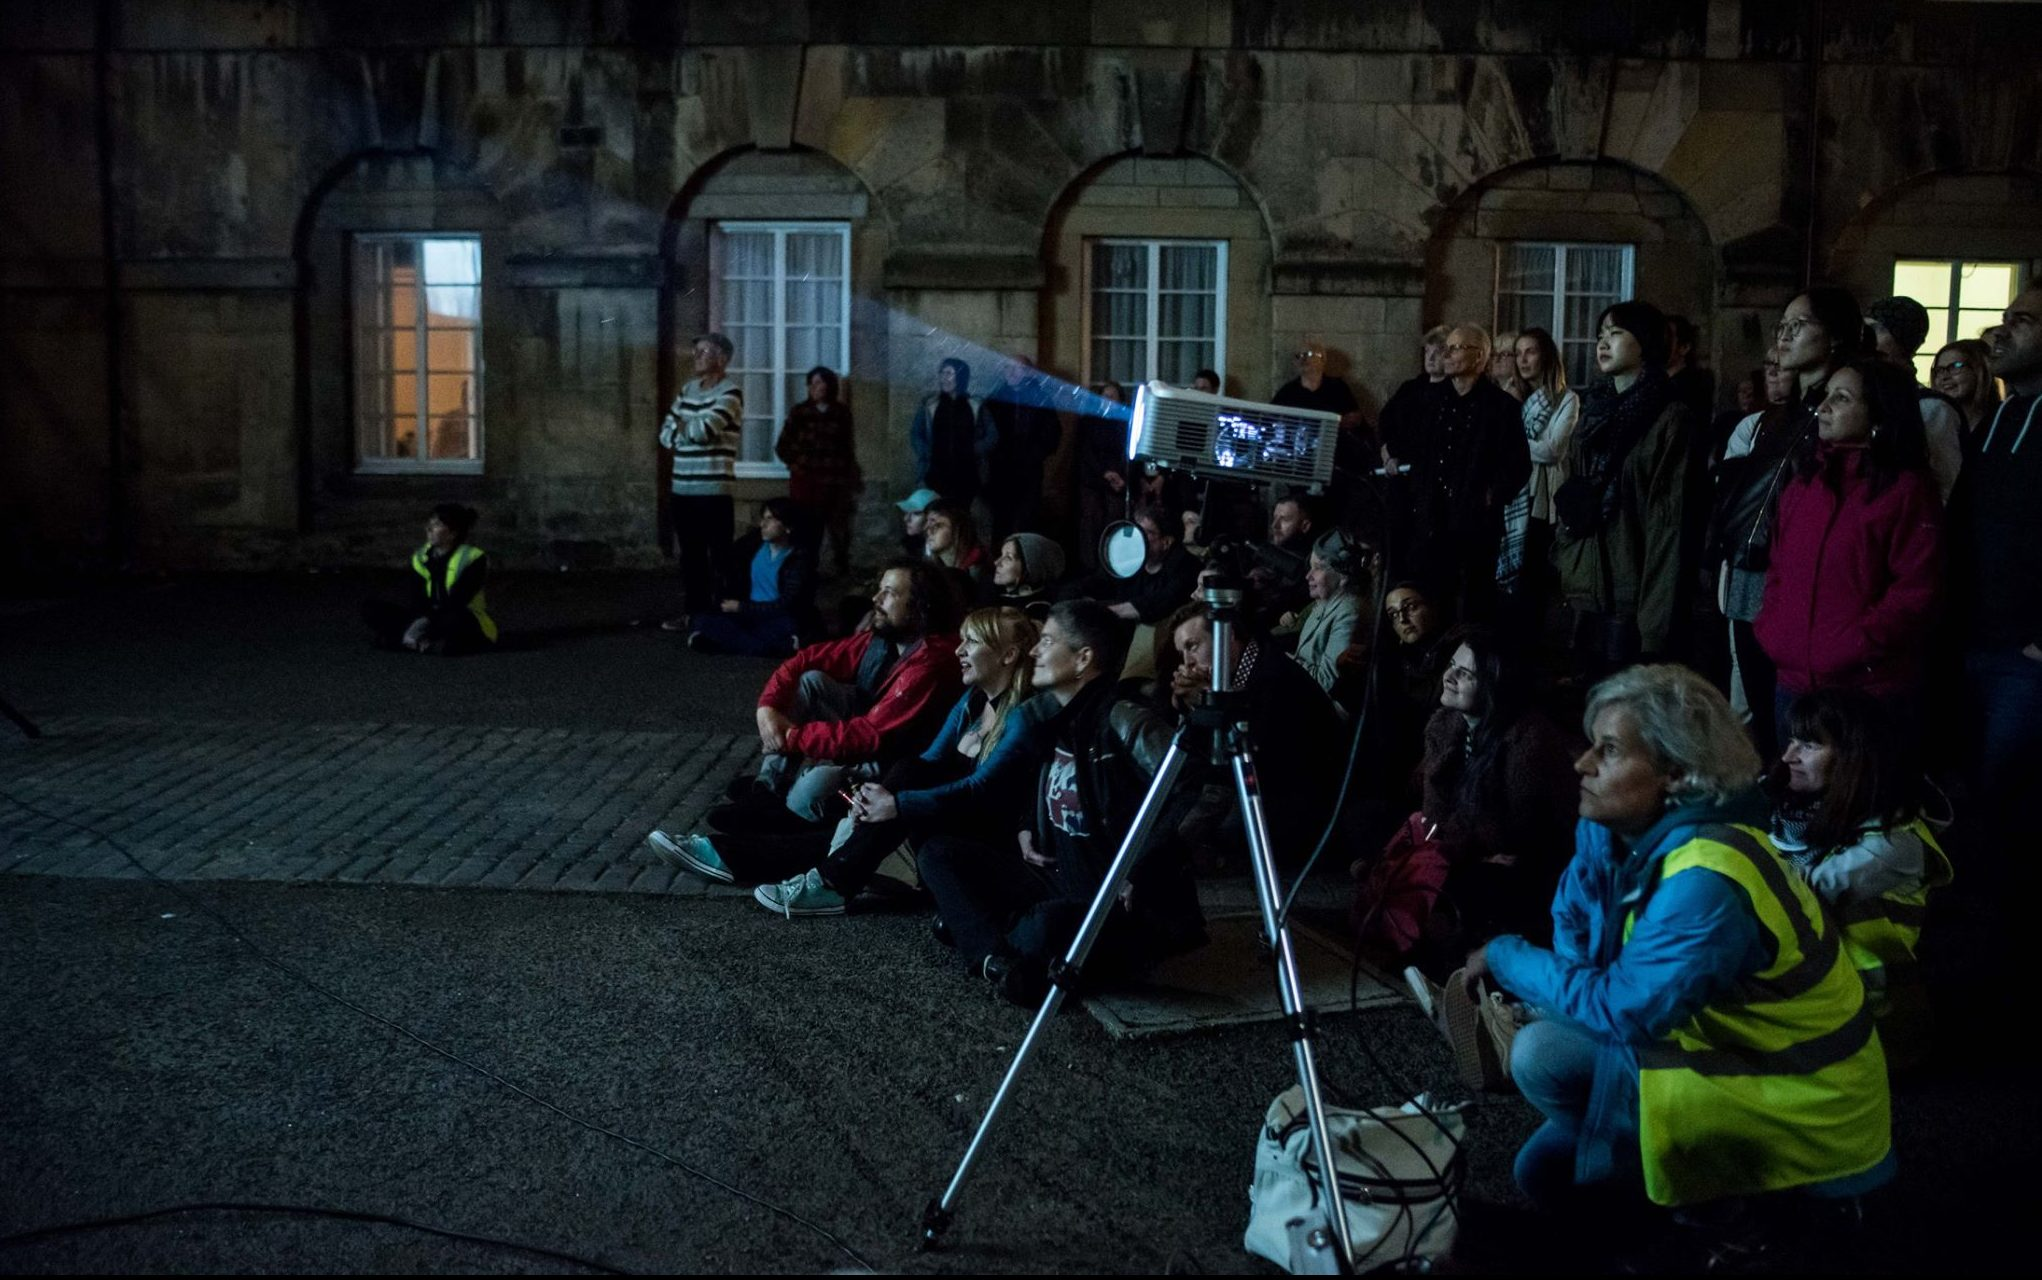 An audience sits on the floor outside, looking towards a projection that's happening off screen. A projector beams light to the left of the image.